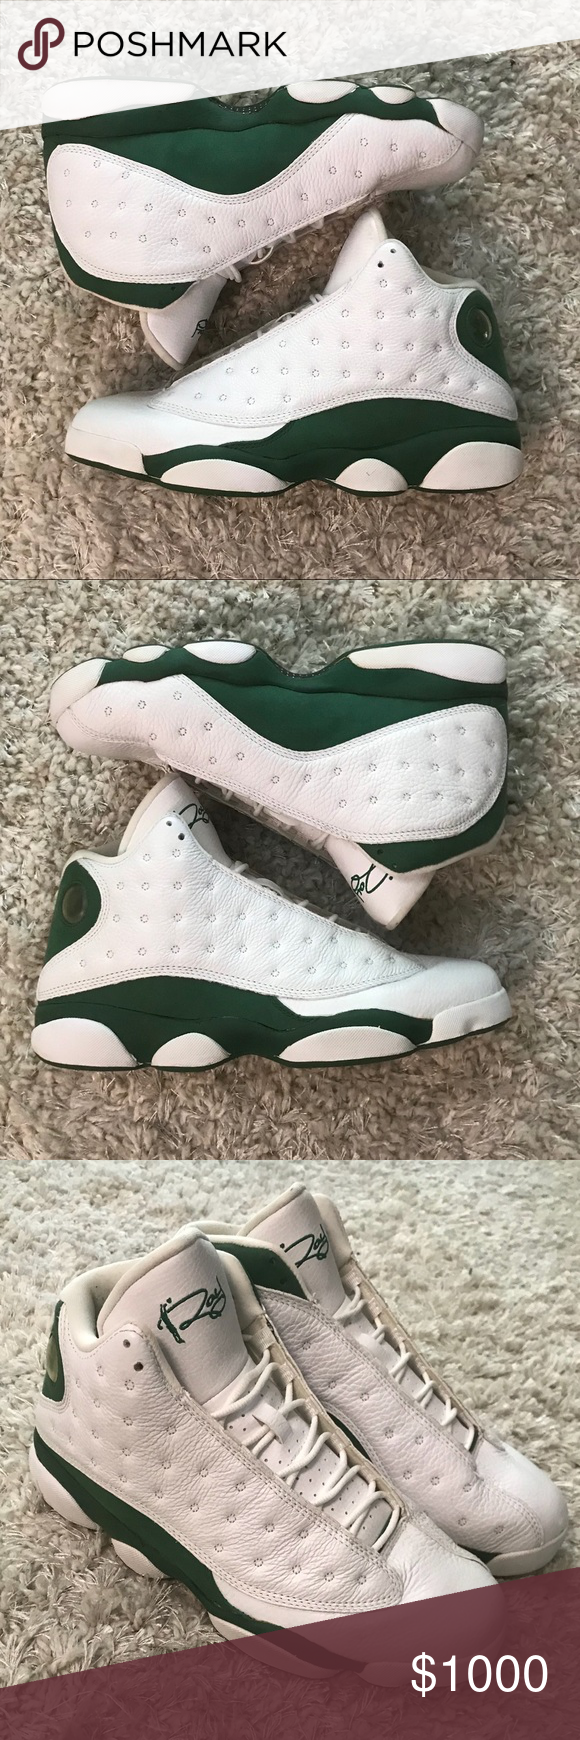 c83ff868193 Jordan 13 Retro XIII Ray Allen PE 414571-125 10.5 Selling a pair of Gently